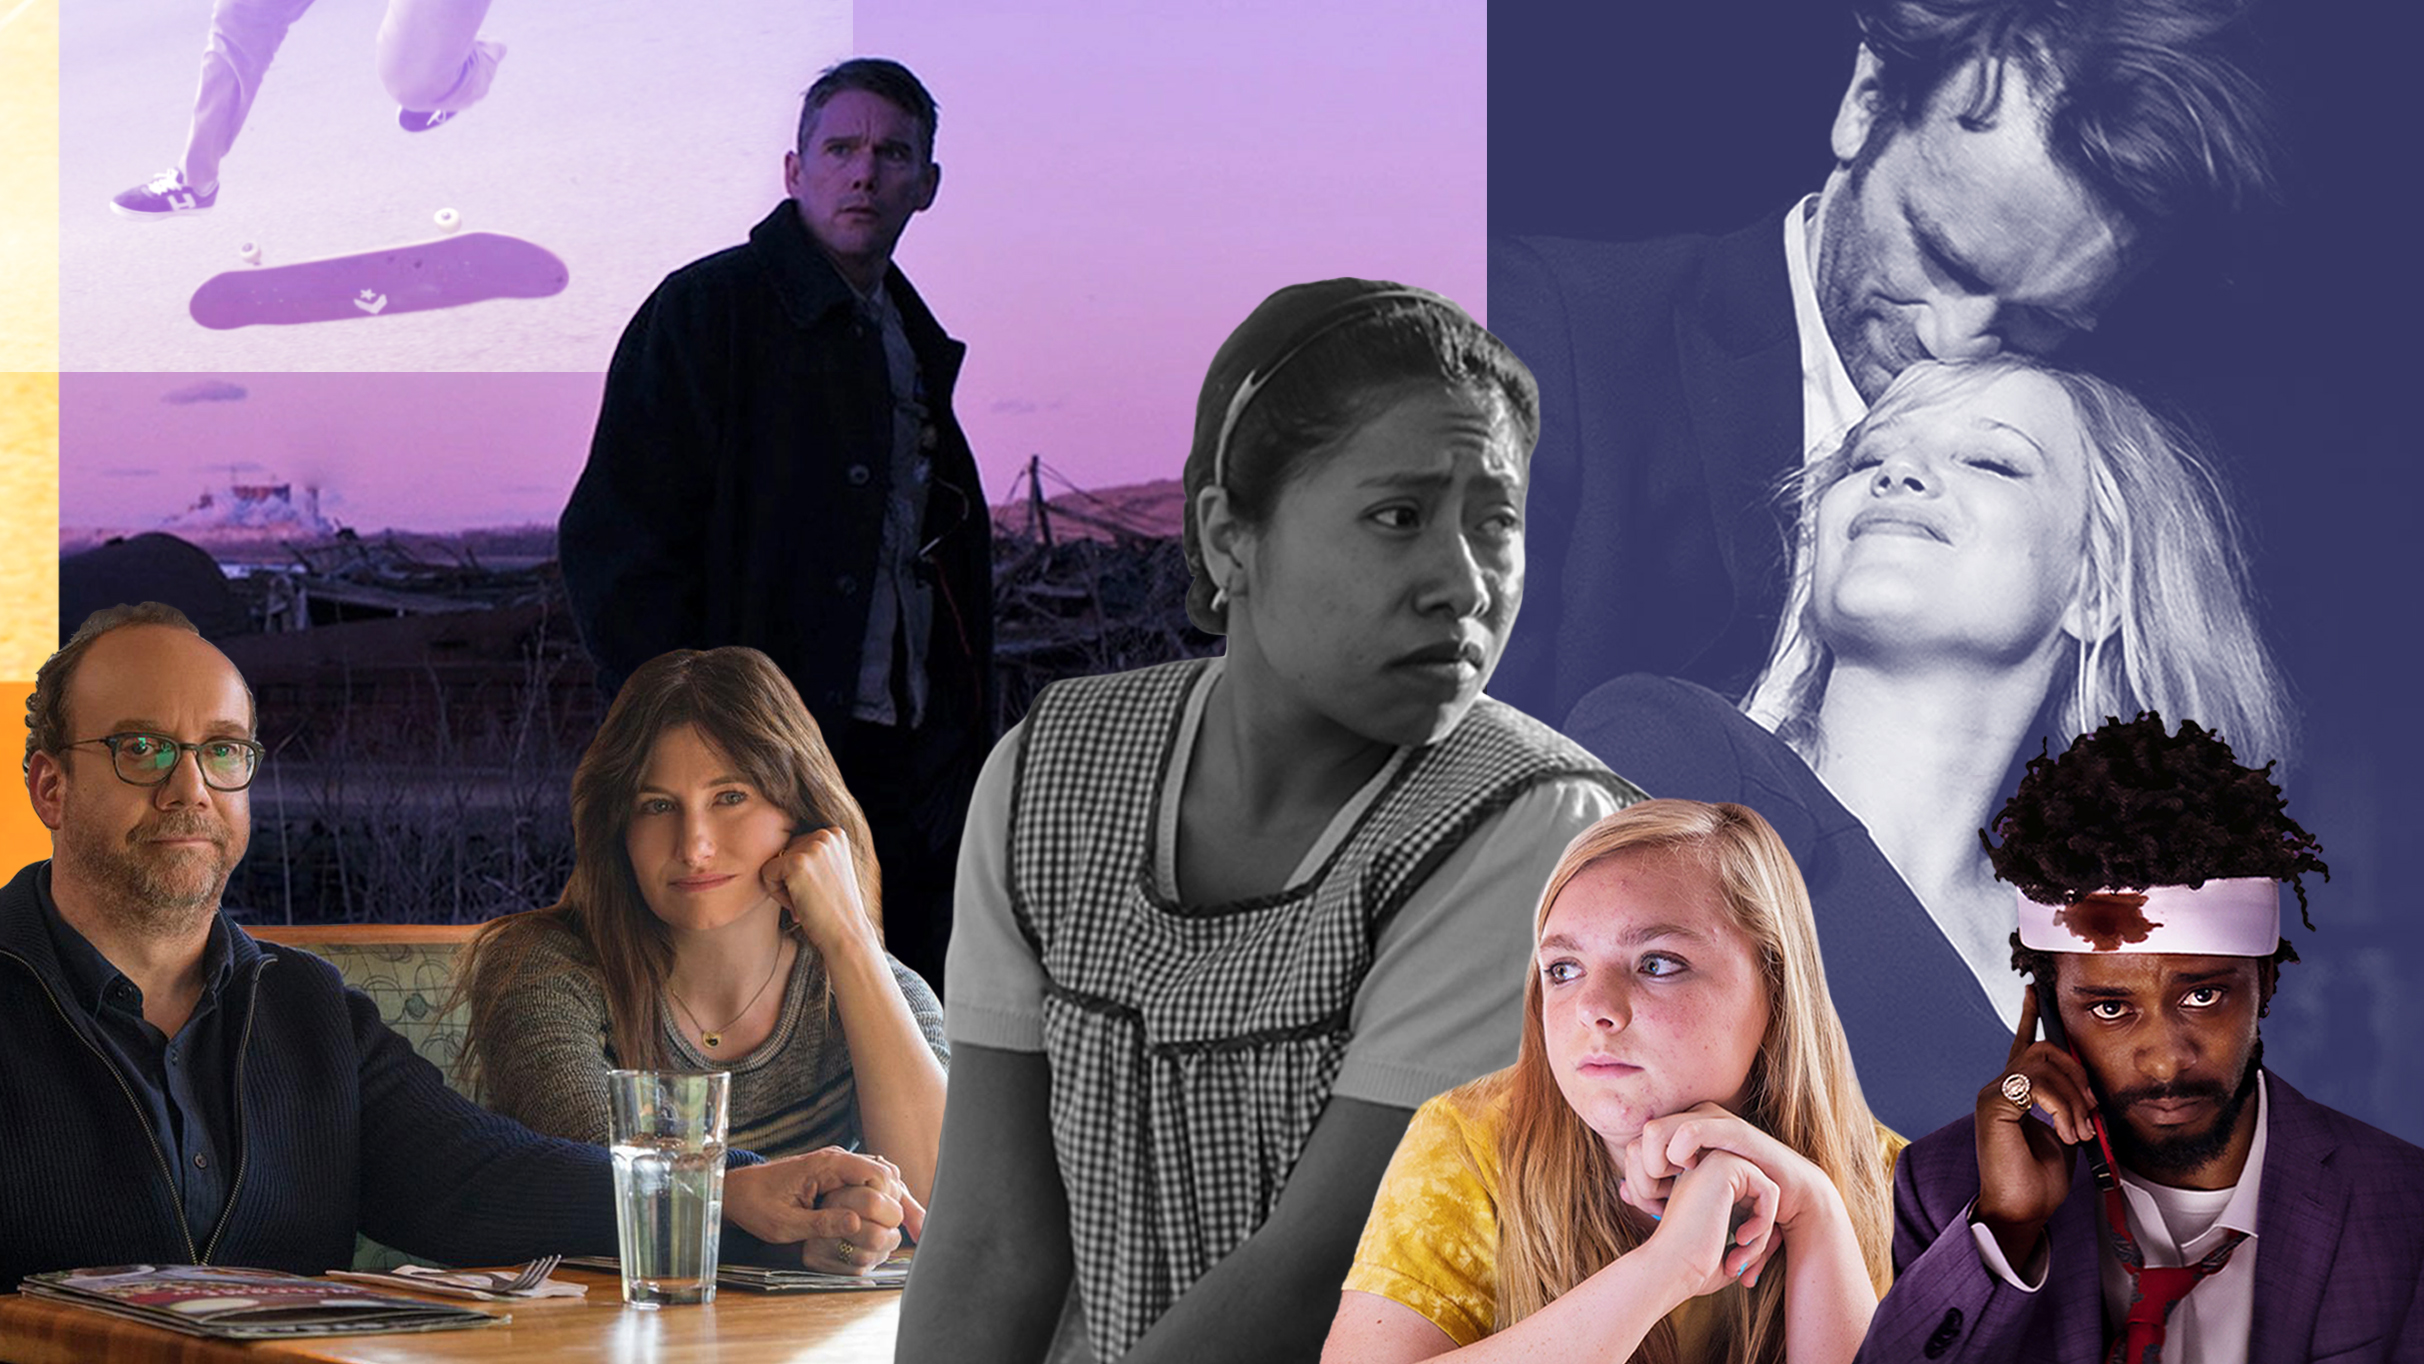 The best movies of 2018 and how to watch them - Vox